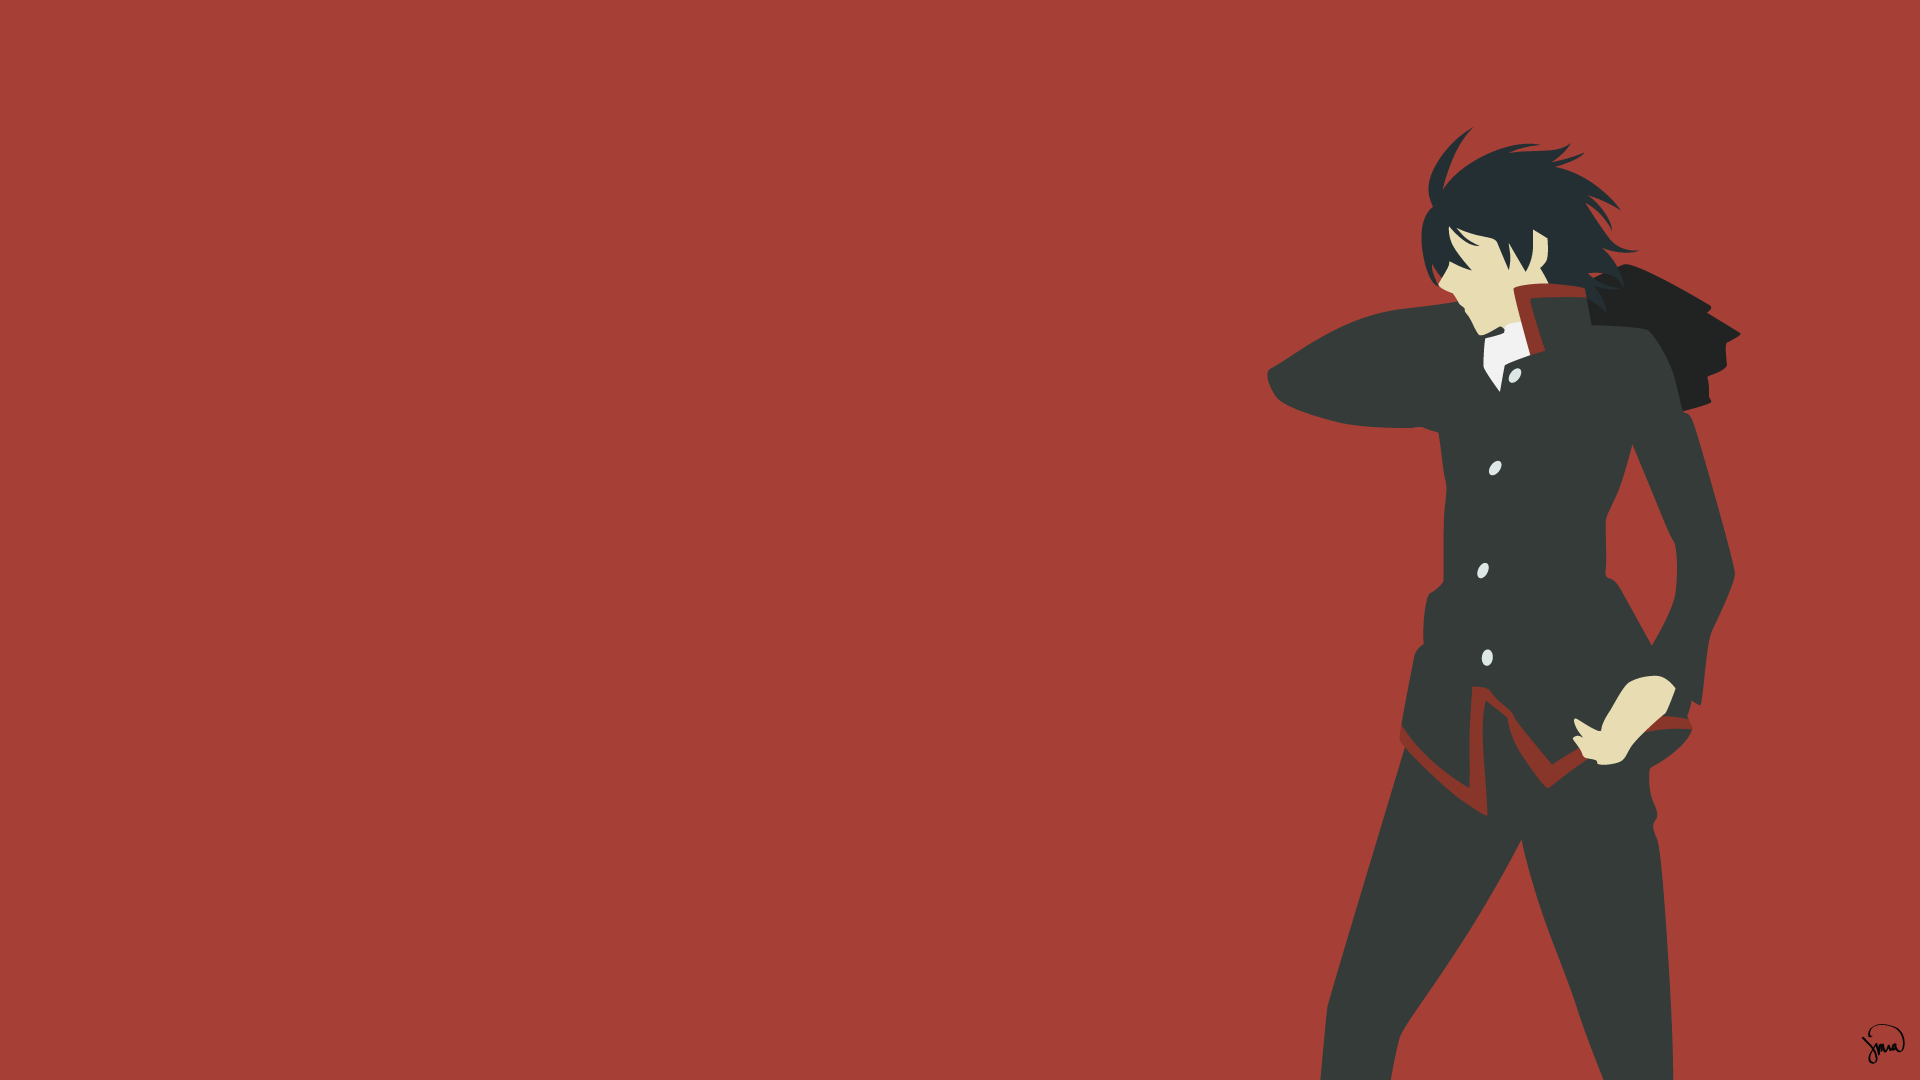 Minimalist Anime Wallpapers Top Free Minimalist Anime Backgrounds Wallpaperaccess